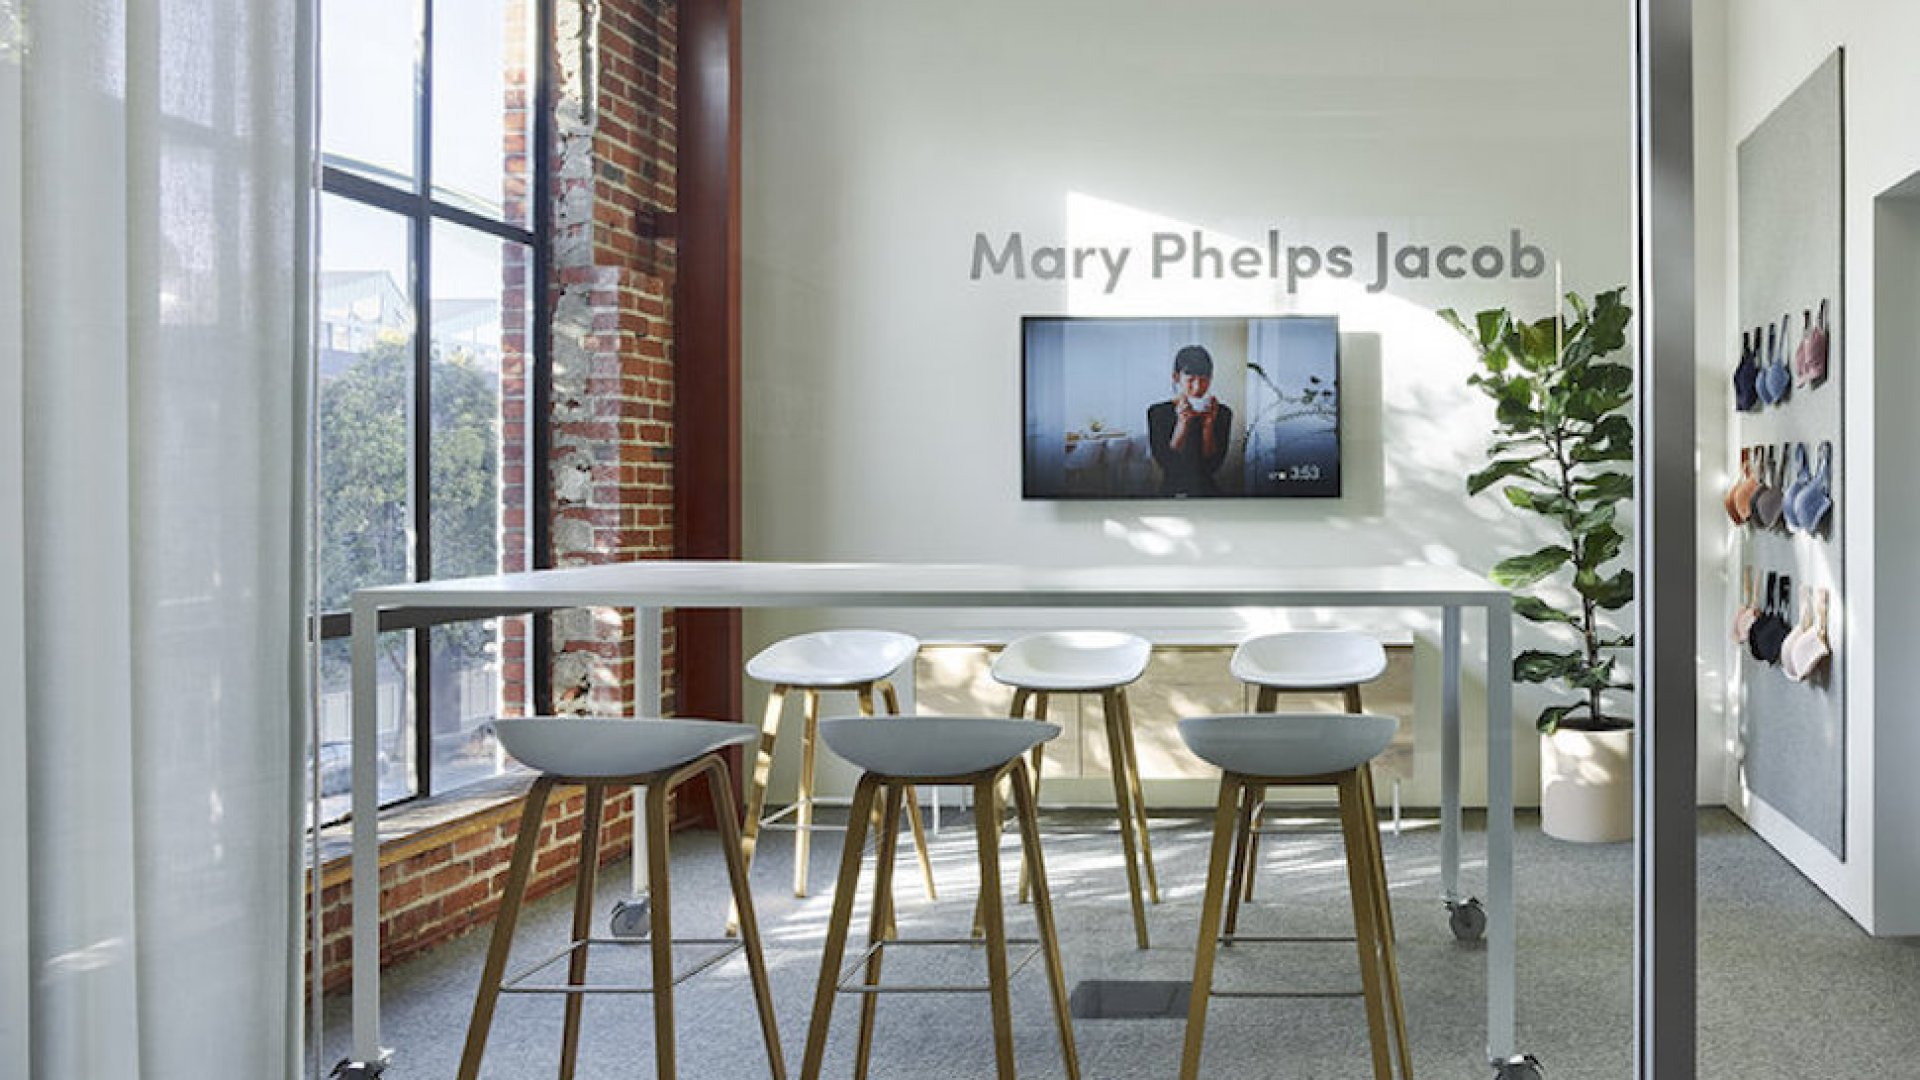 A light-filled conference room at ThirdLove's San Francisco office, named in honor of Mary Phelps Jacob--the first person to receive a patent for the modern bra.